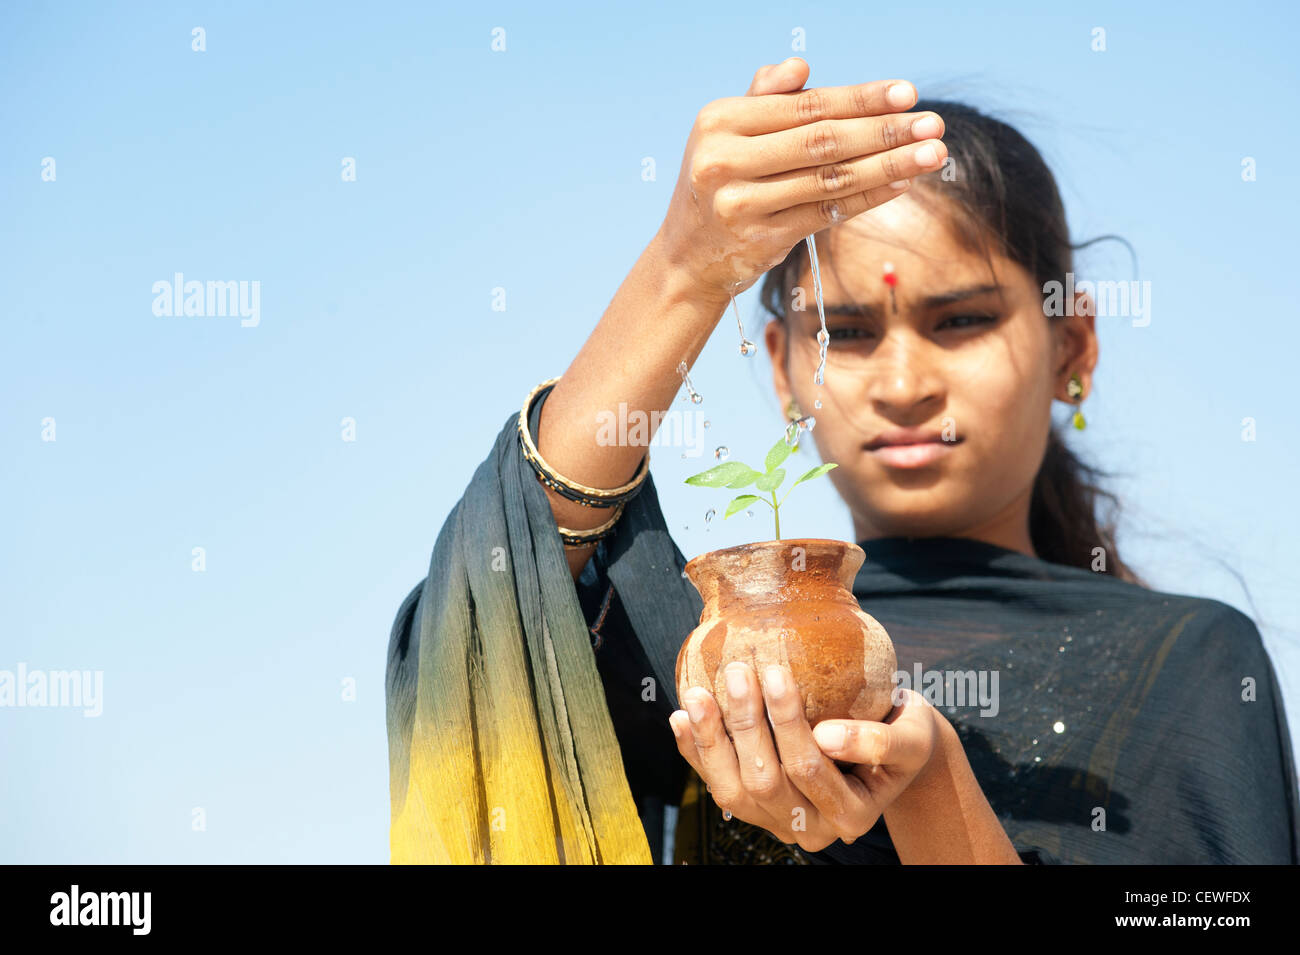 Indian teenage girl sprinkling water over a plant seedling in a clay pot. India Stock Photo